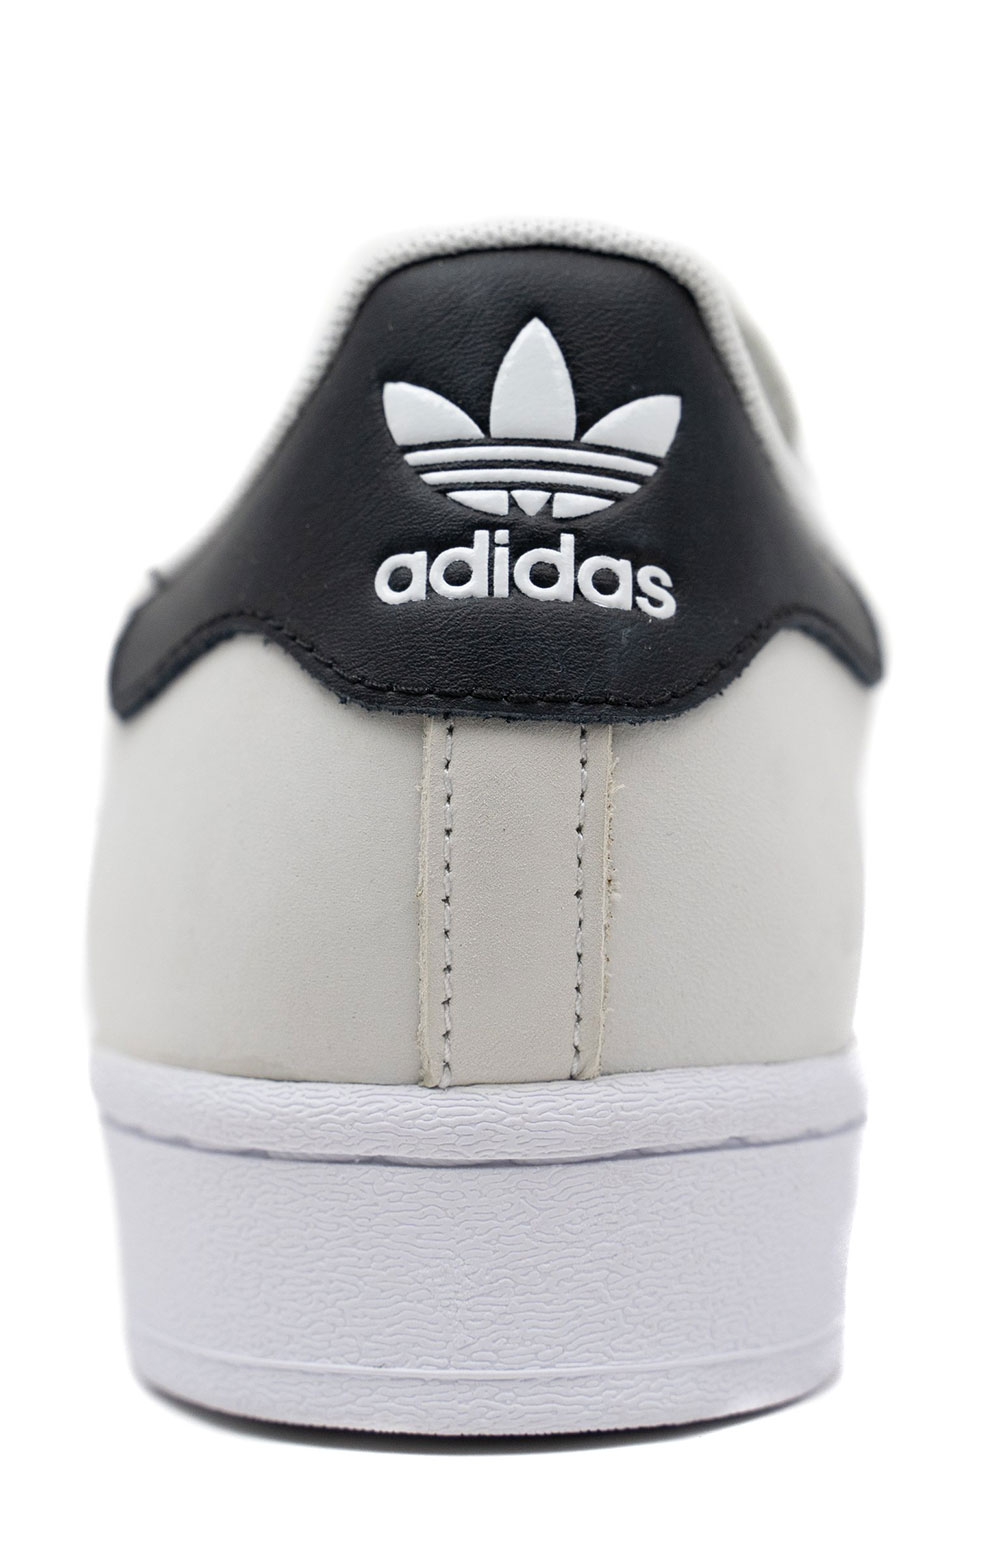 (FV0322) Superstar Adv Shoes - White/Black 4